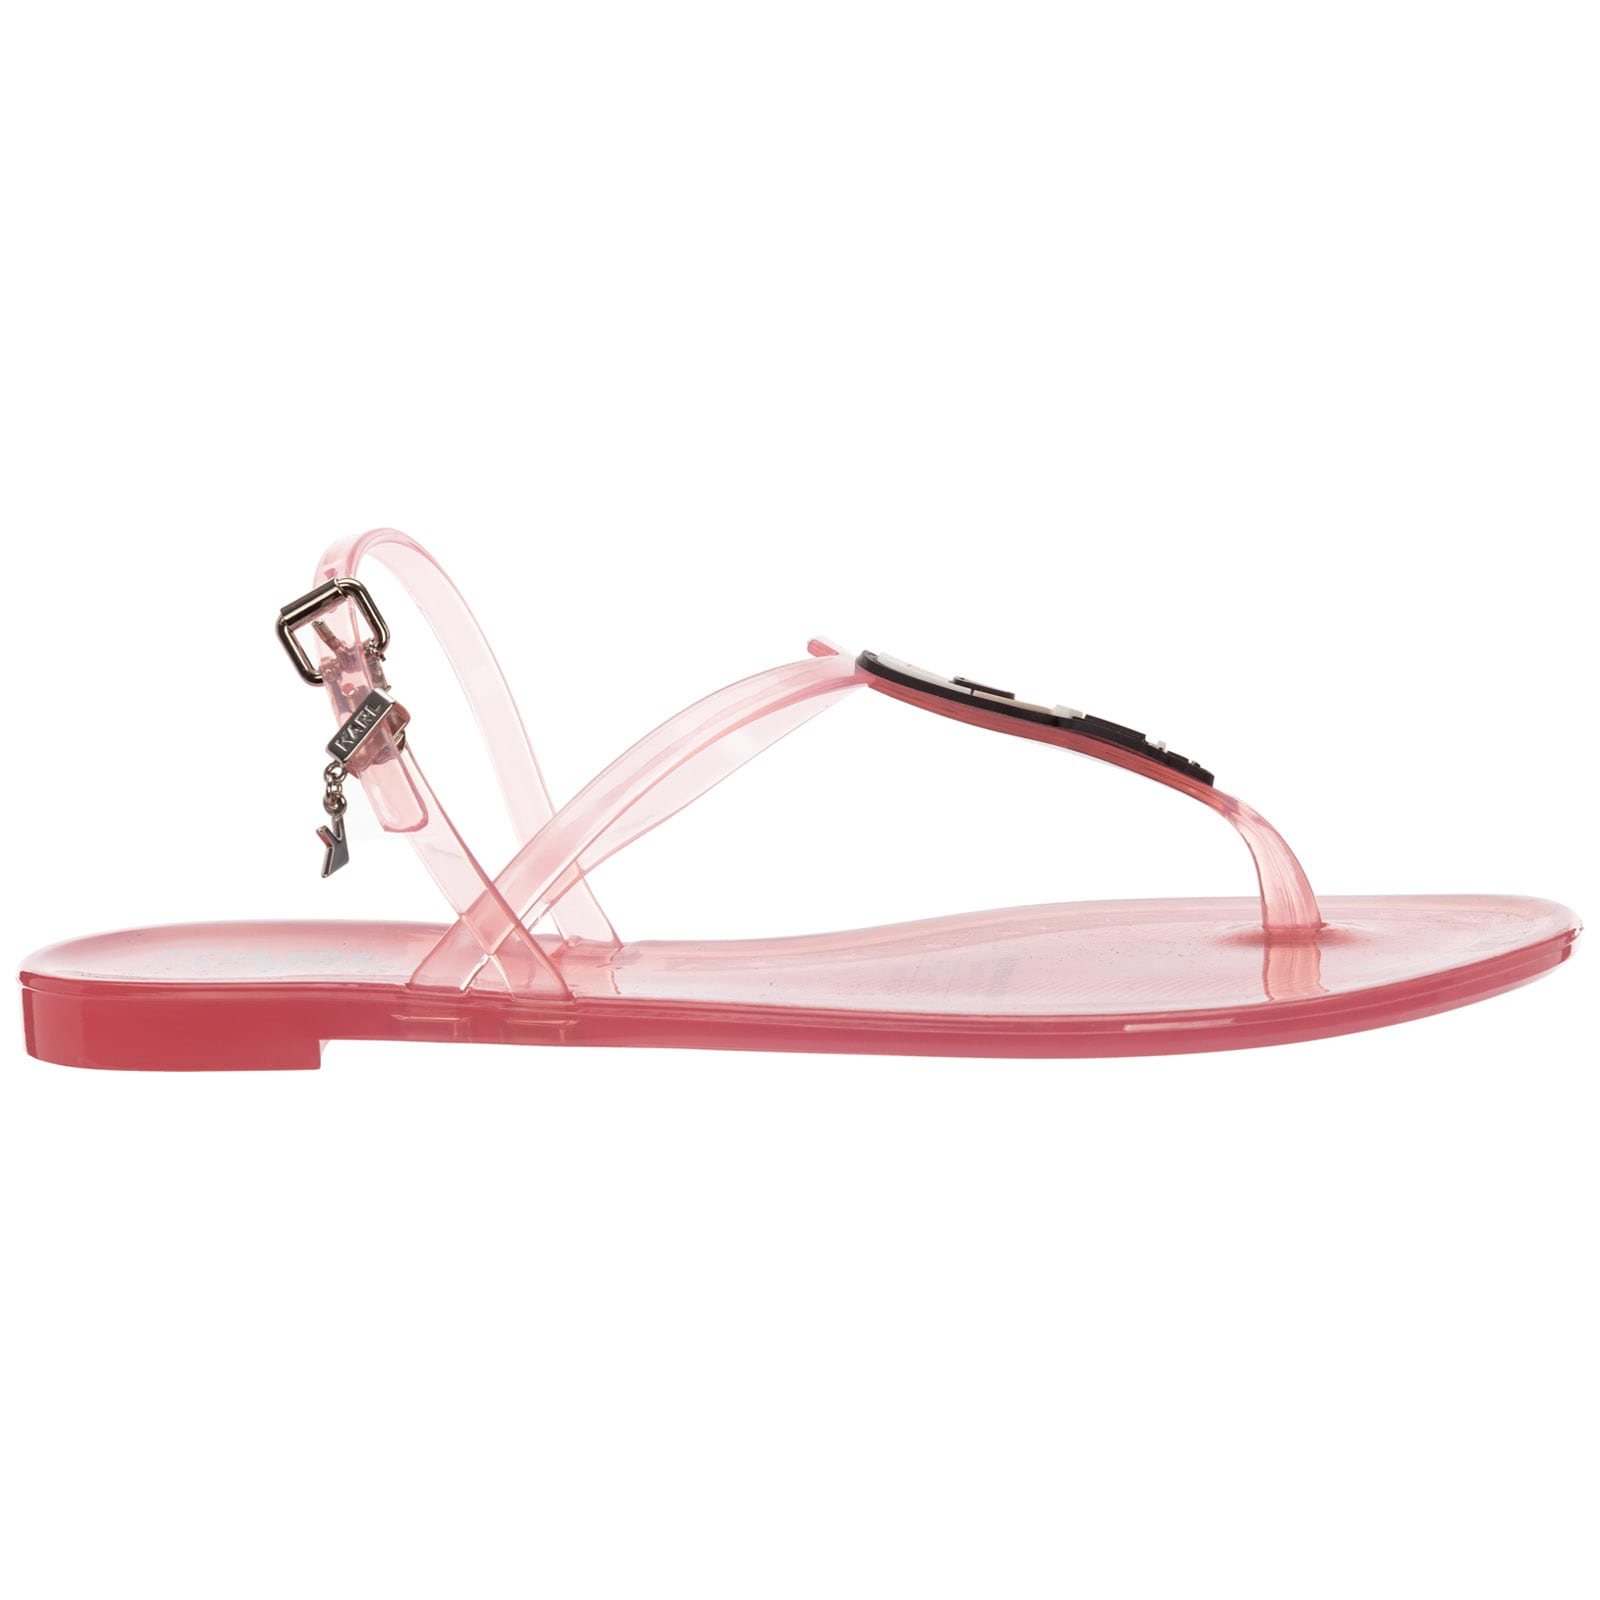 Karl Lagerfeld Jelly T-bar Sandals